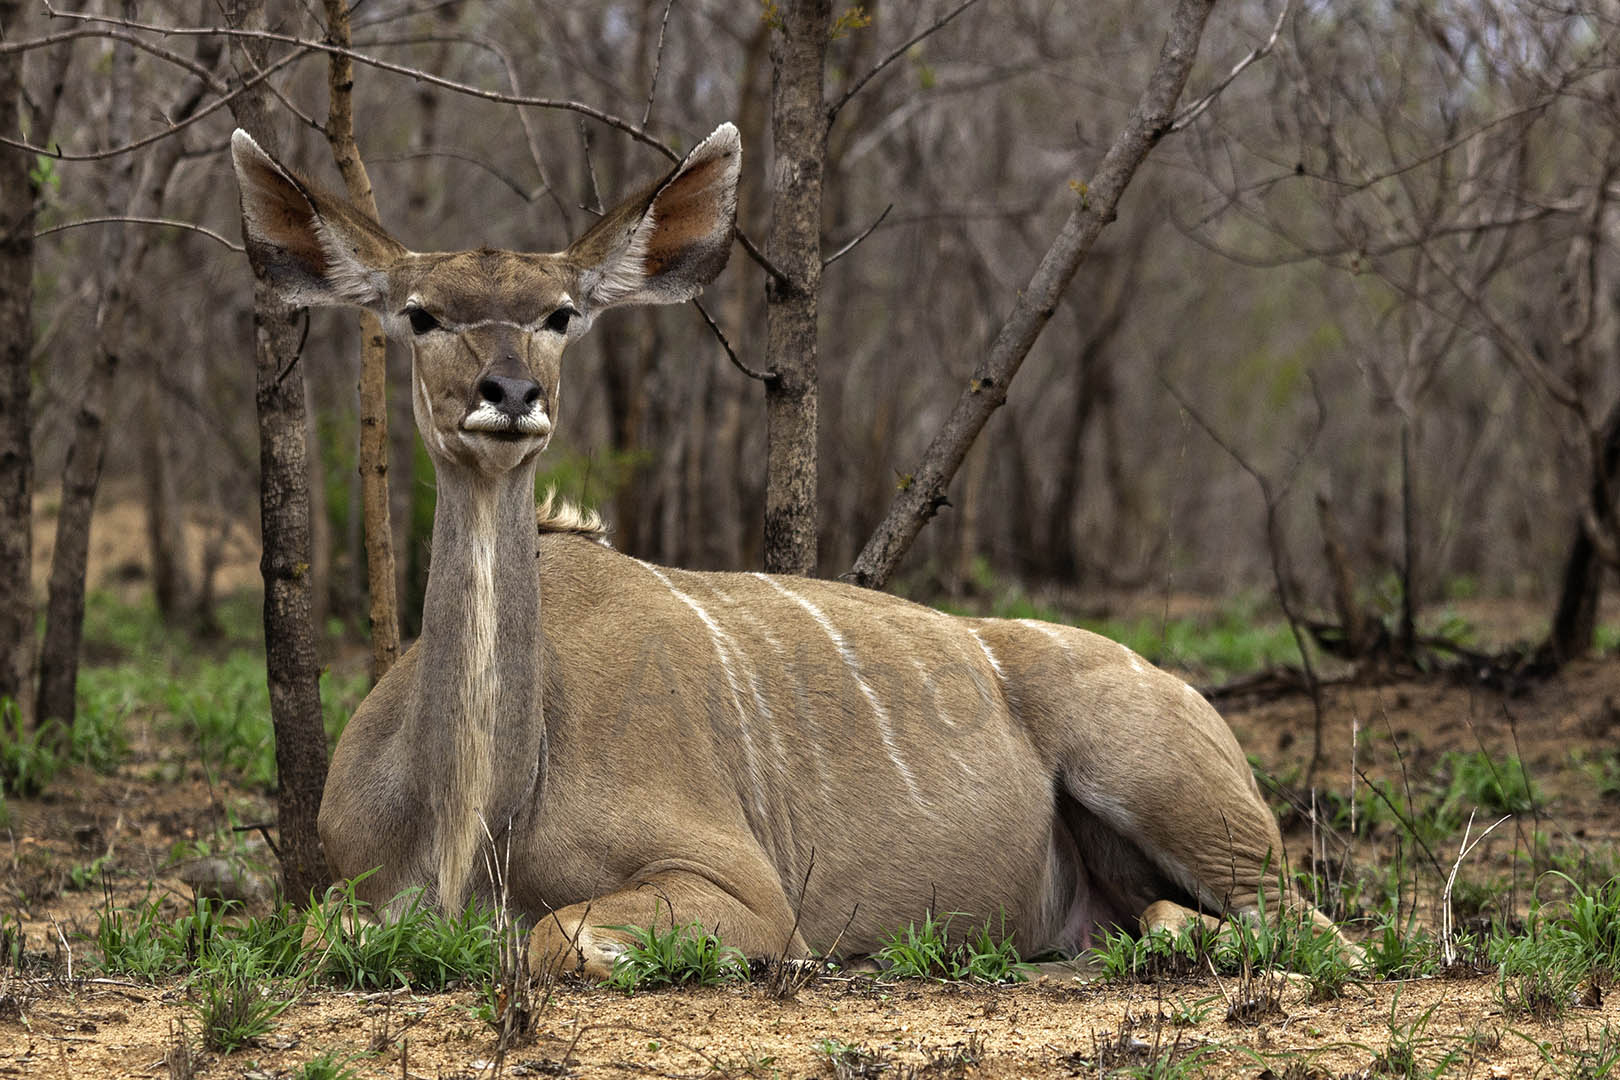 2_NA_Kudu at Rest_Andrew Mayes